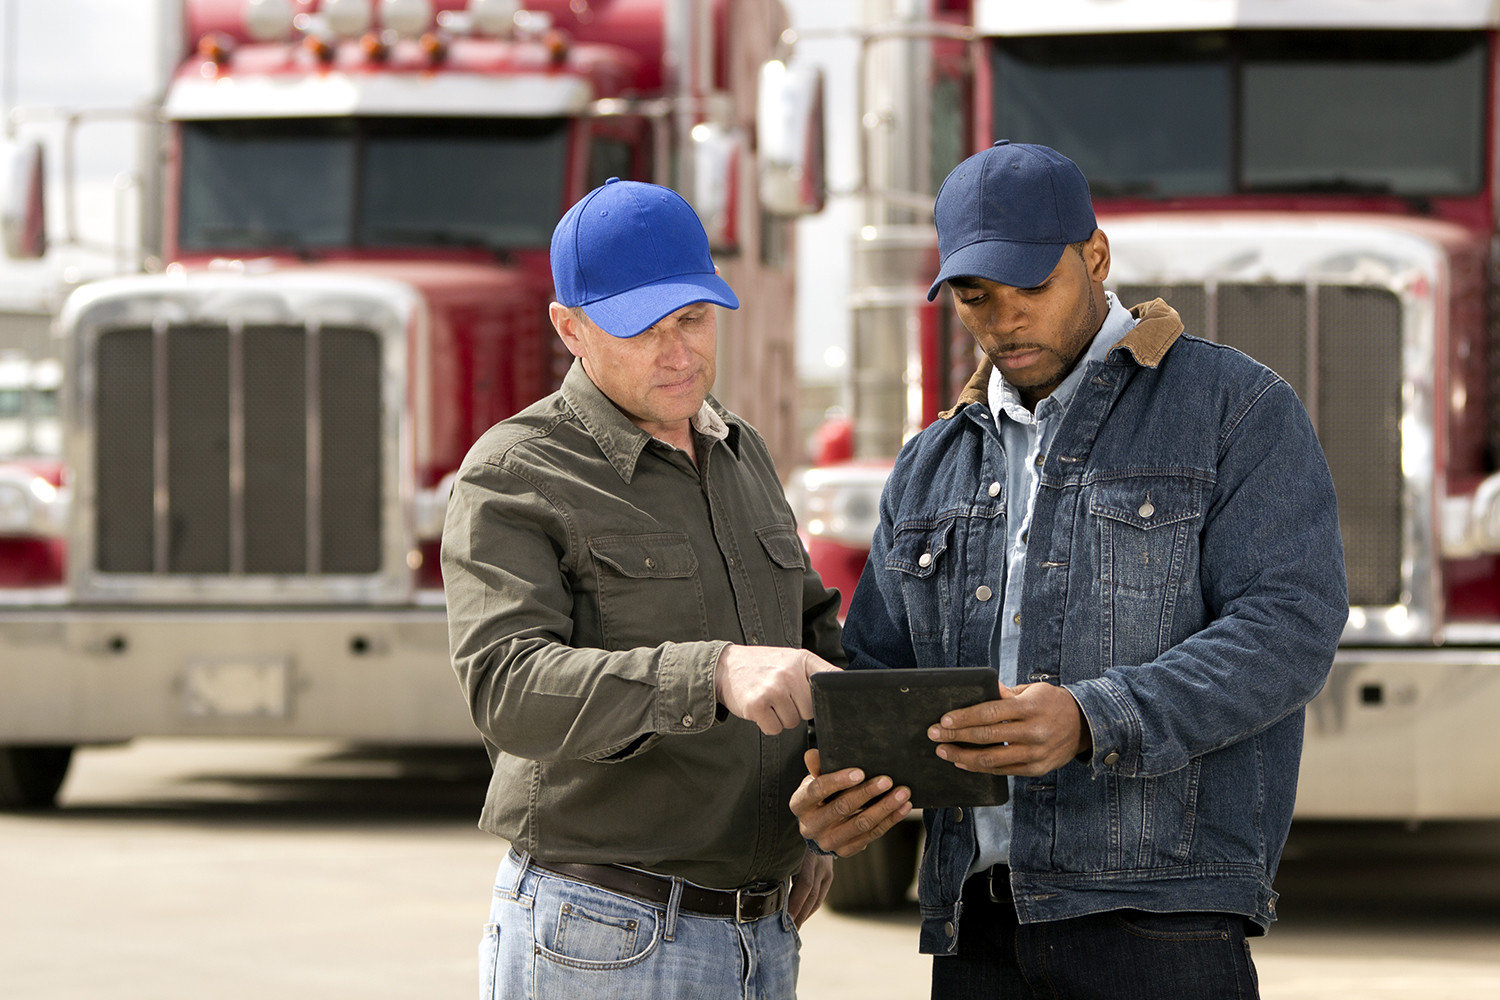 Transportation and logistics Applications - Proof of Delivery|Australia CipherLab world leader in AIDC solutions